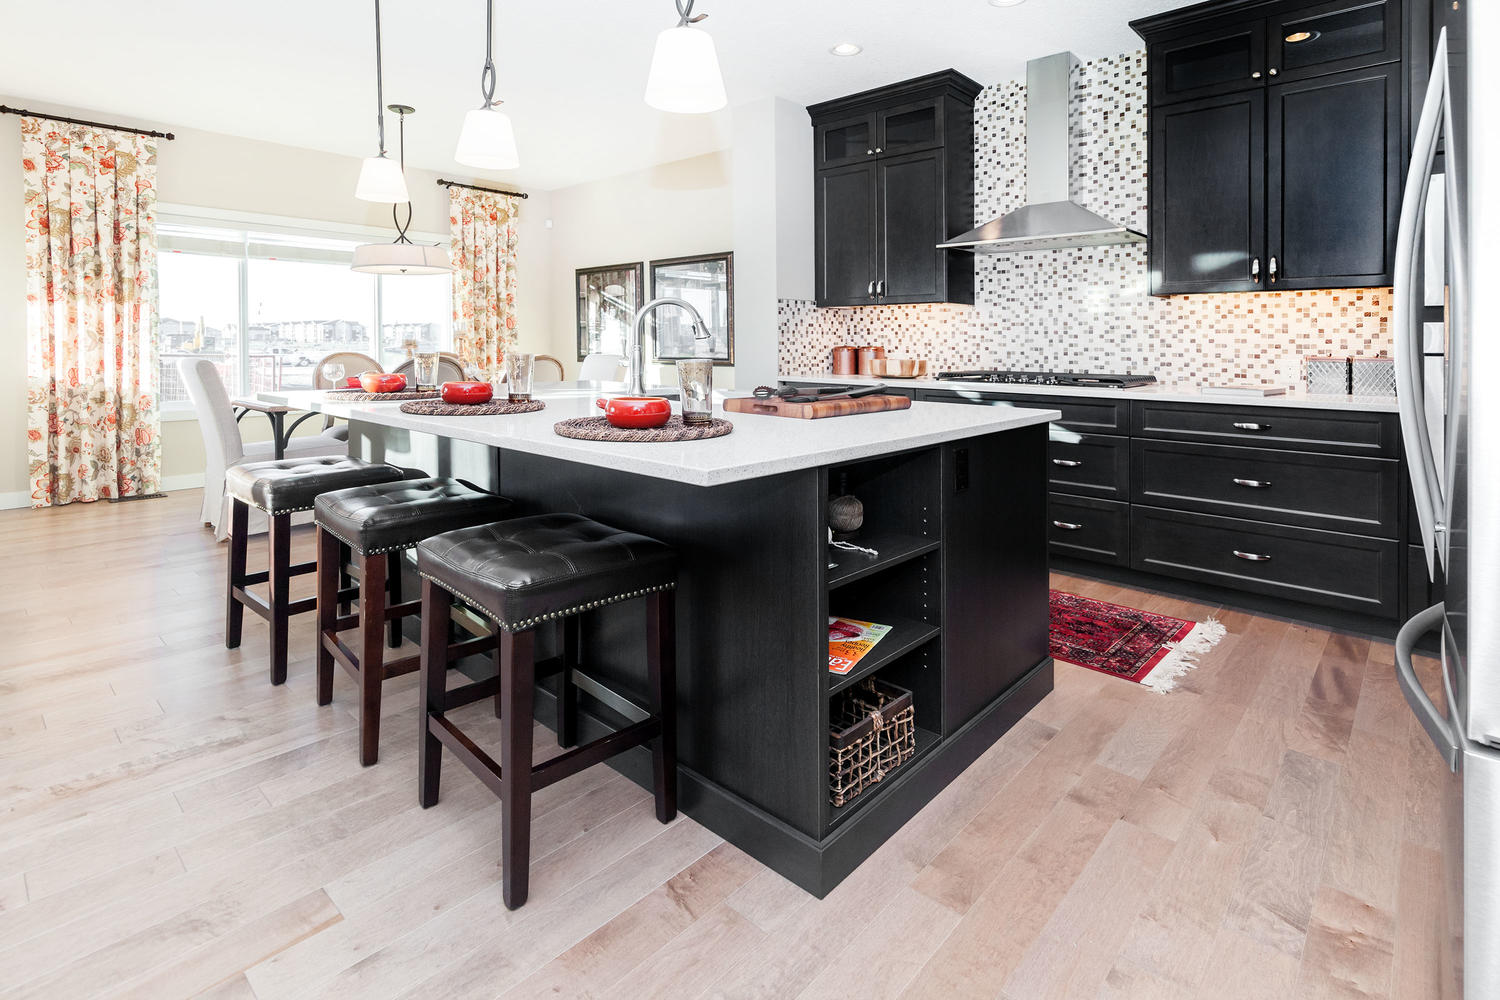 the open concept kitchen and dining room in the pacesetter front drive home.